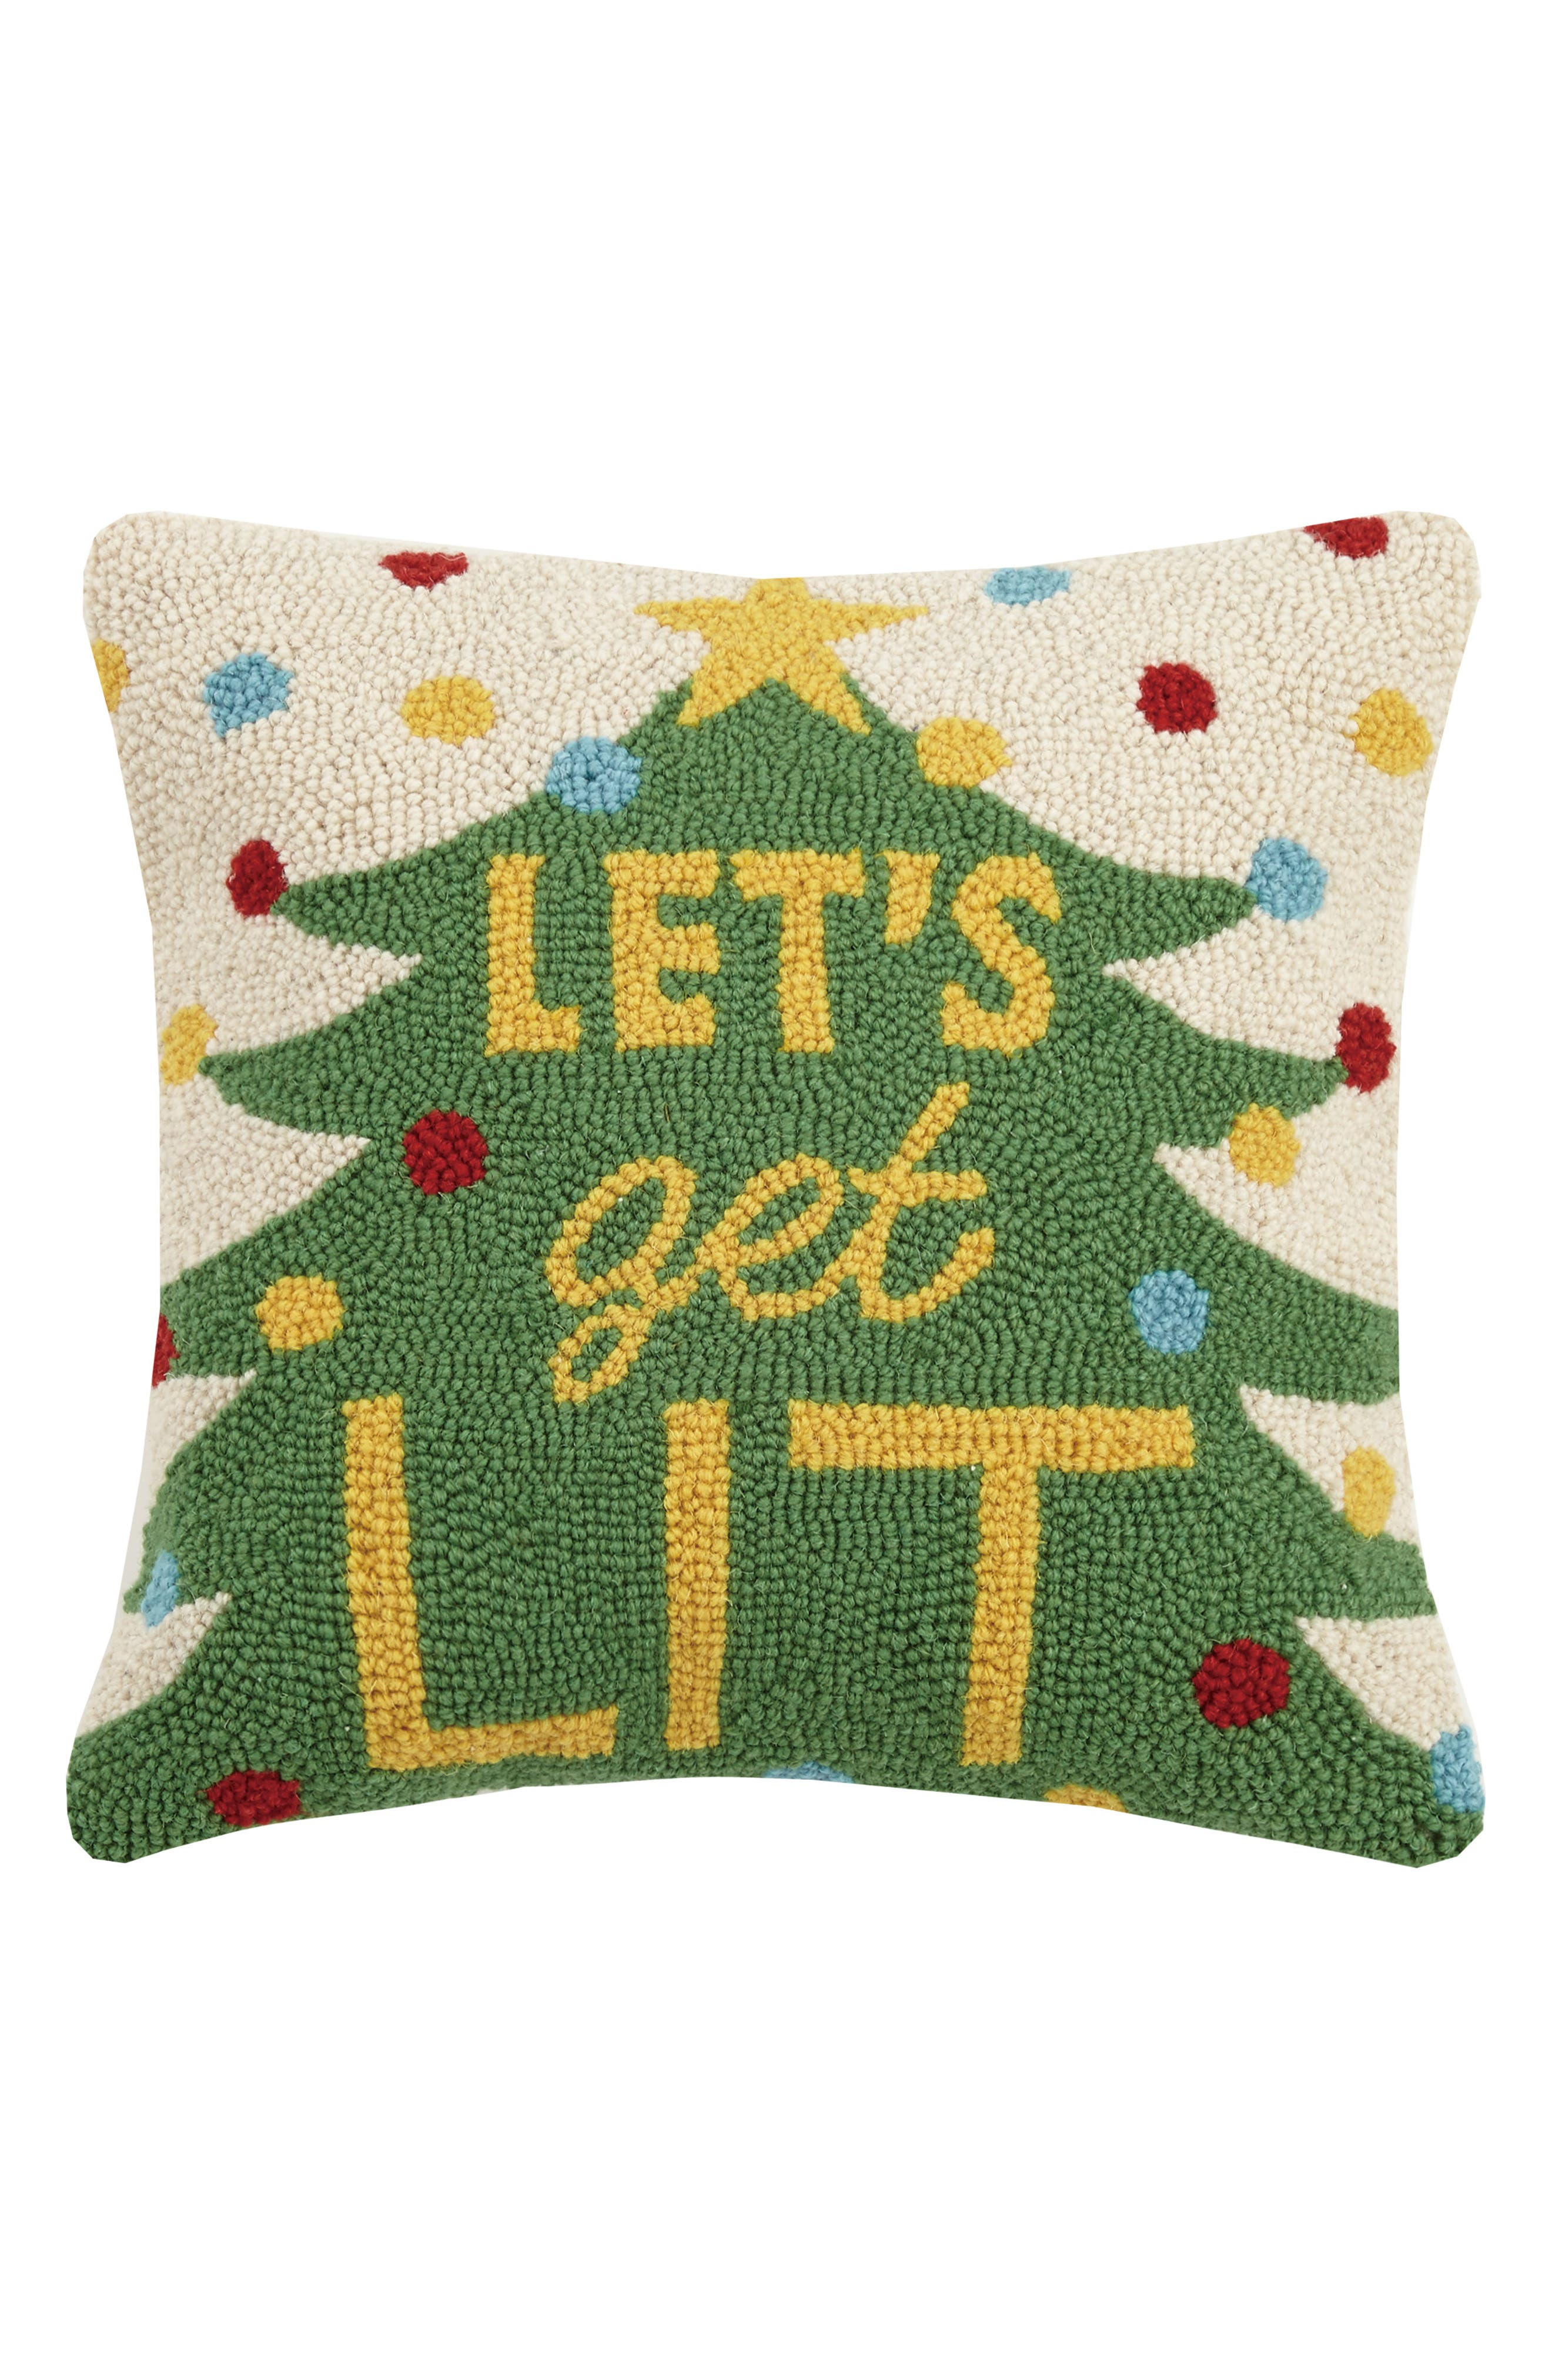 Let's Get Lit Hooked Pillow,                         Main,                         color, 300